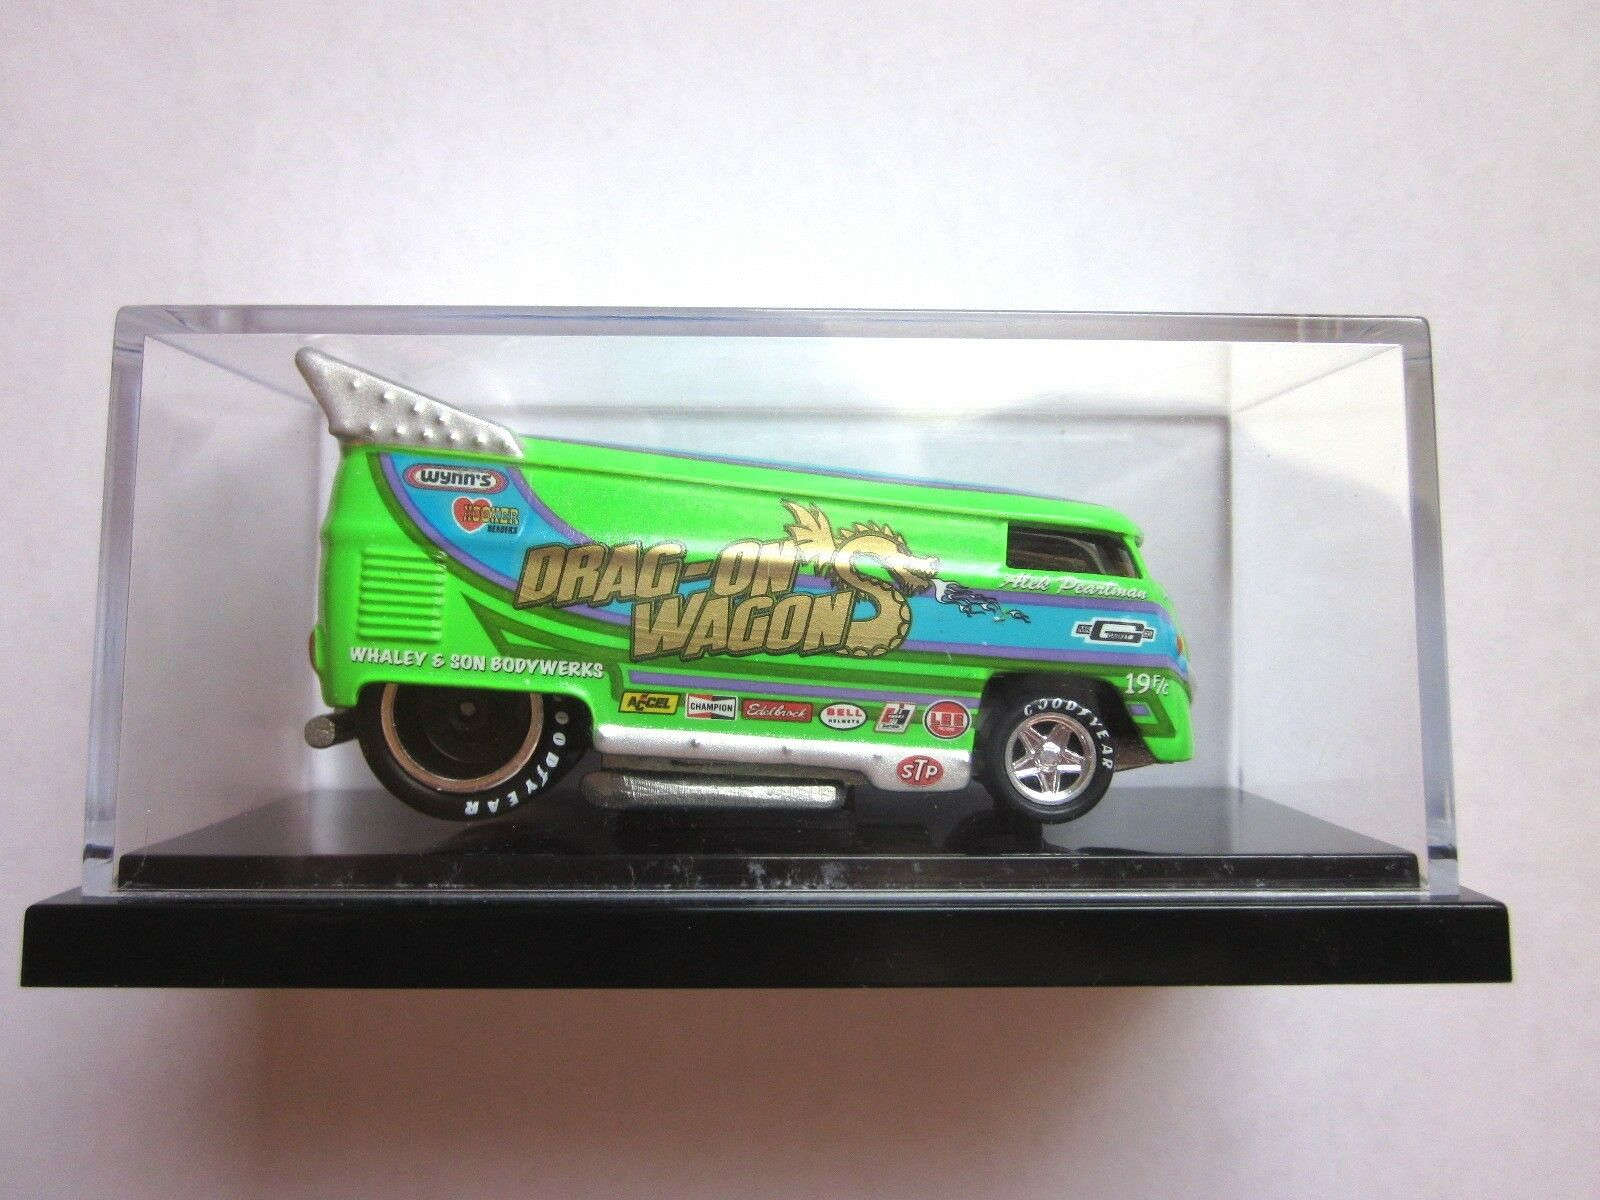 HOT WHEELS LIBERTY PROMOTIONS - verde DRAG-ON WAGON VW DRAG BUS - 539 of 1500